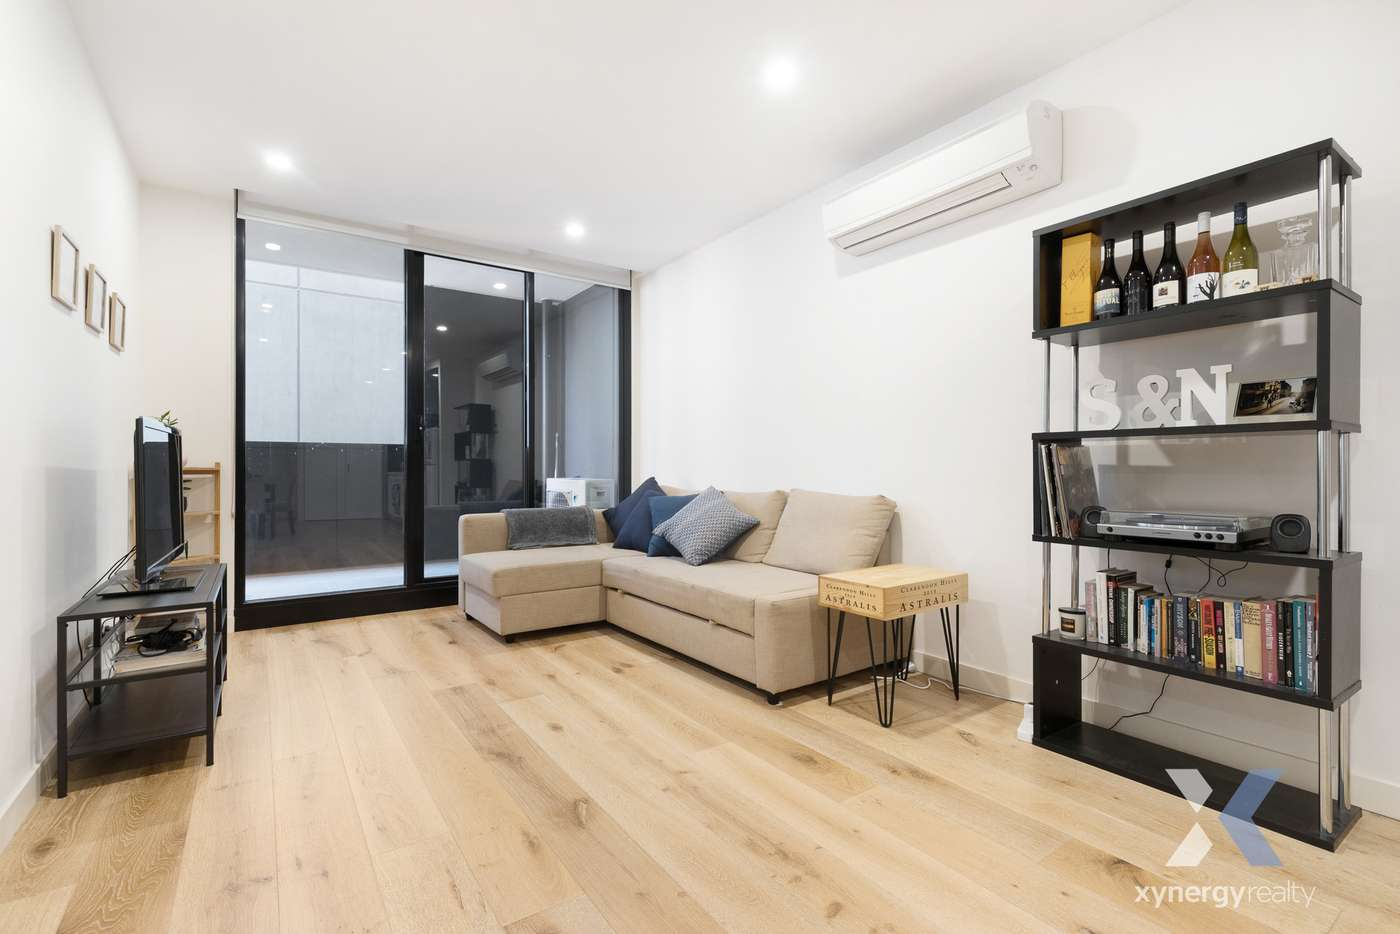 Main view of Homely apartment listing, 206/33-35 Breese Street, Brunswick VIC 3056